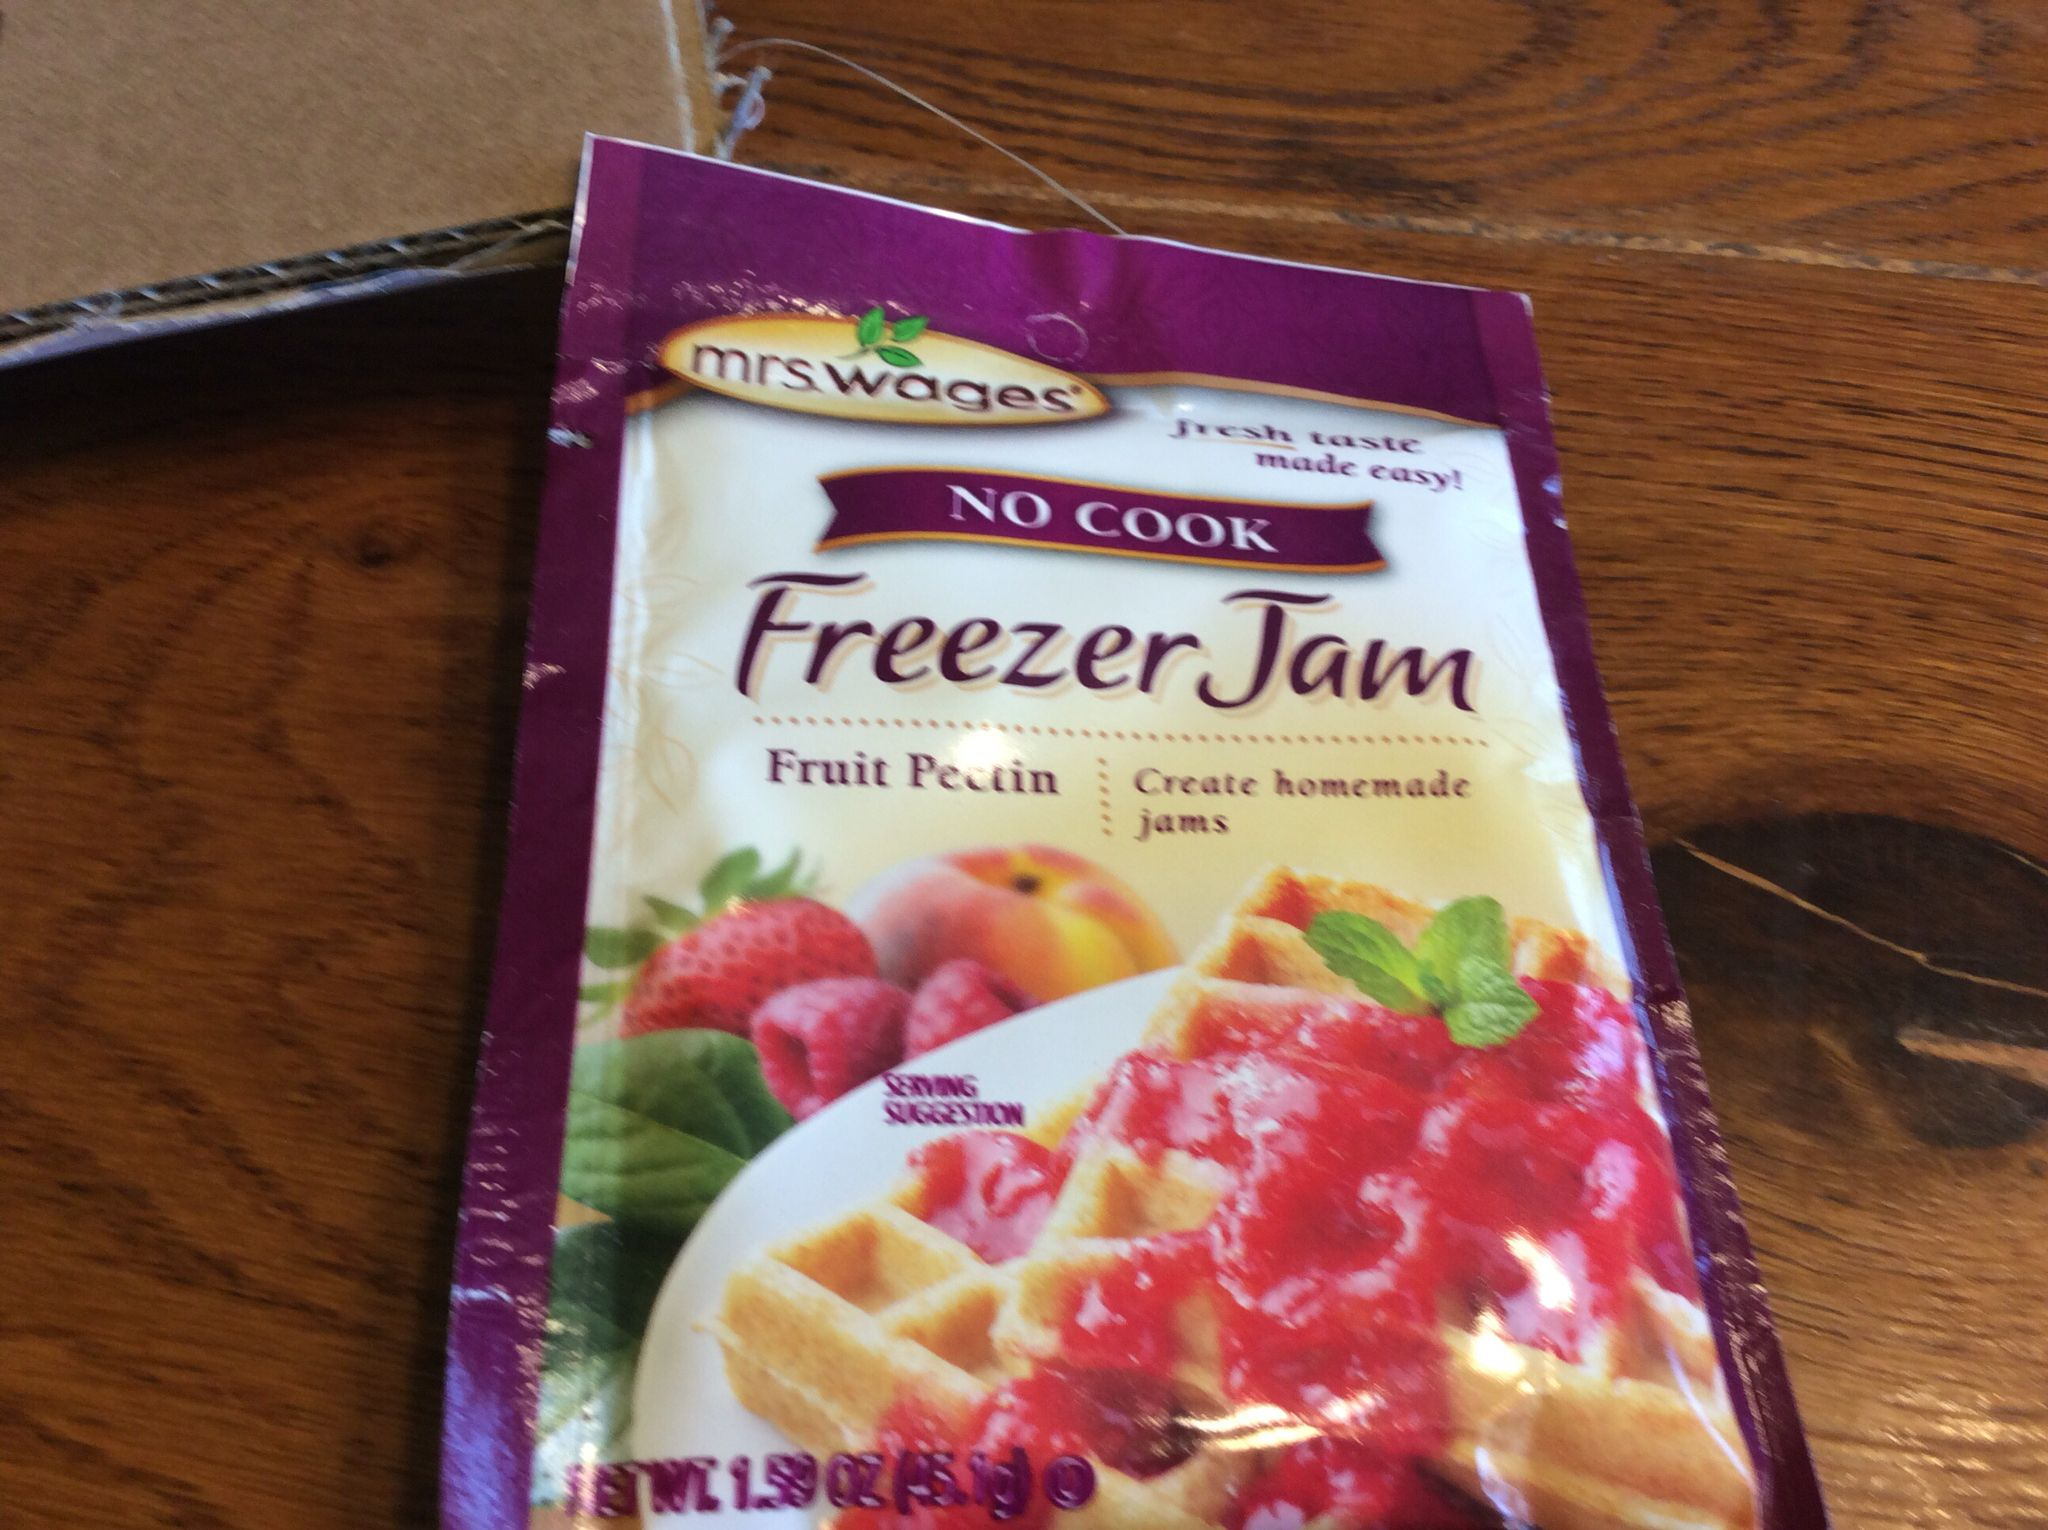 Buy one of these packets for every 2 lbs of strawberries. Follow direction on package. Do not buy regular pectin only freezer.